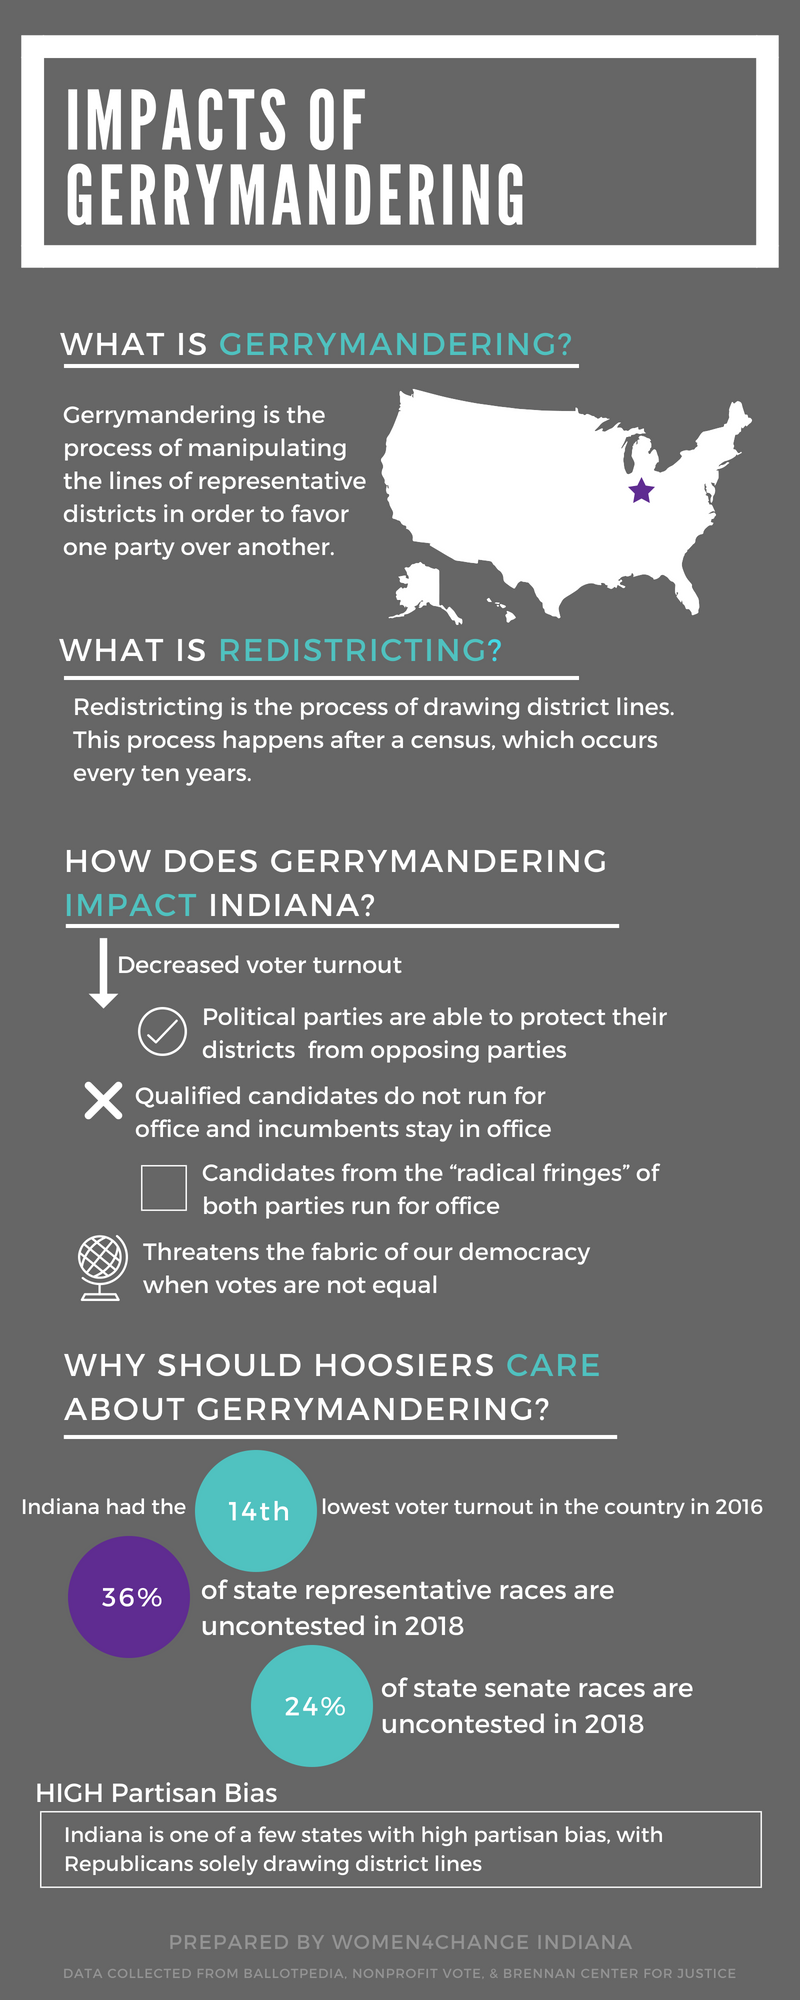 Impacts of Gerrymandering.png